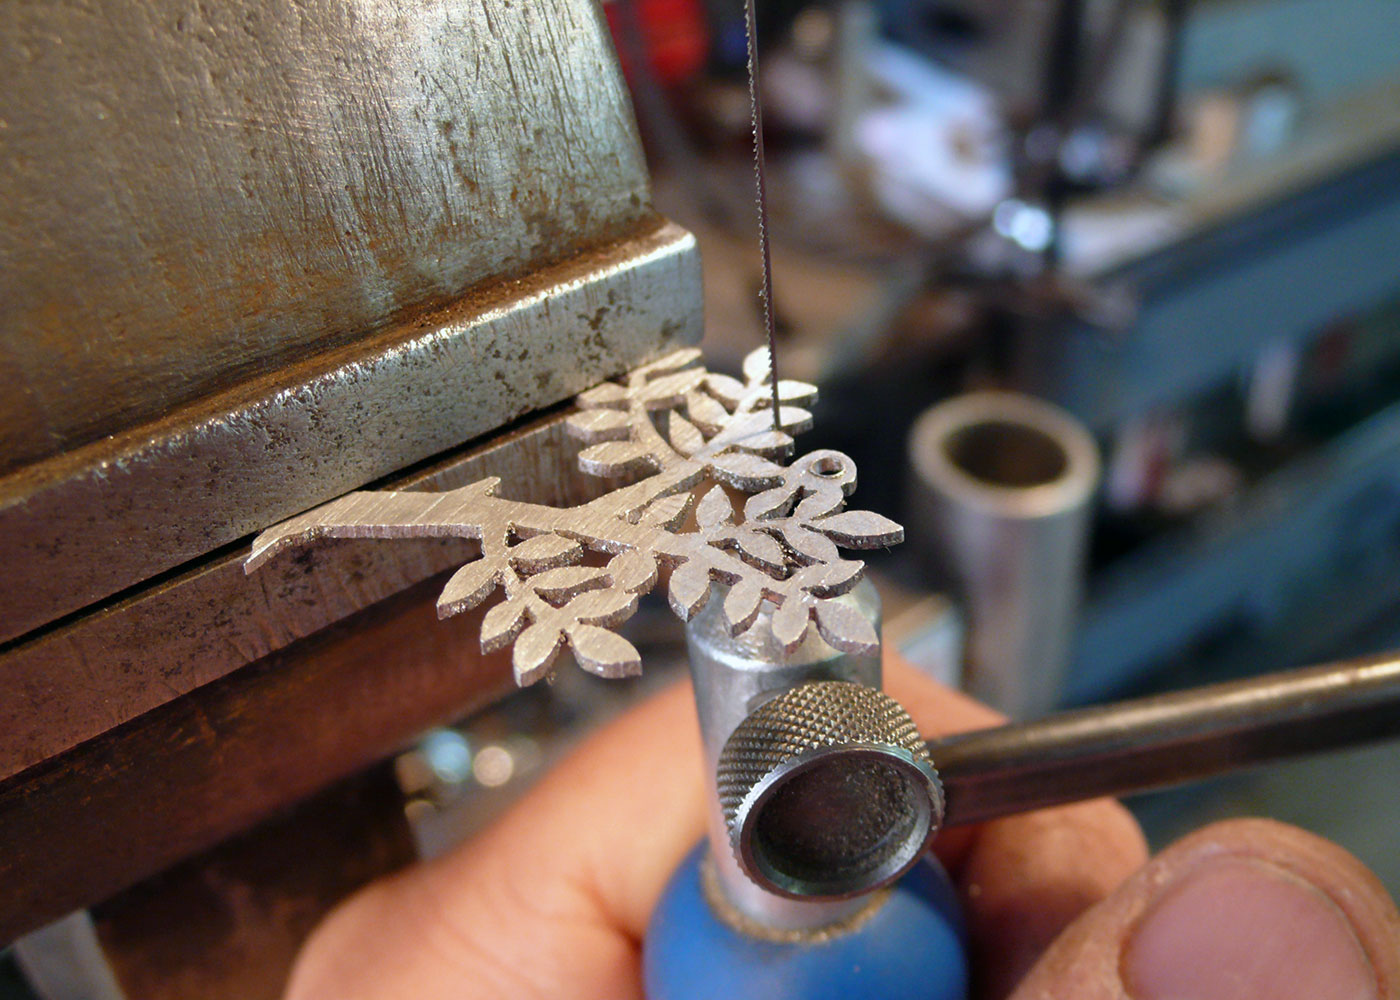 Handcrafted and recycled silver spring tree made from a silver coin in the workshop, Cambridge